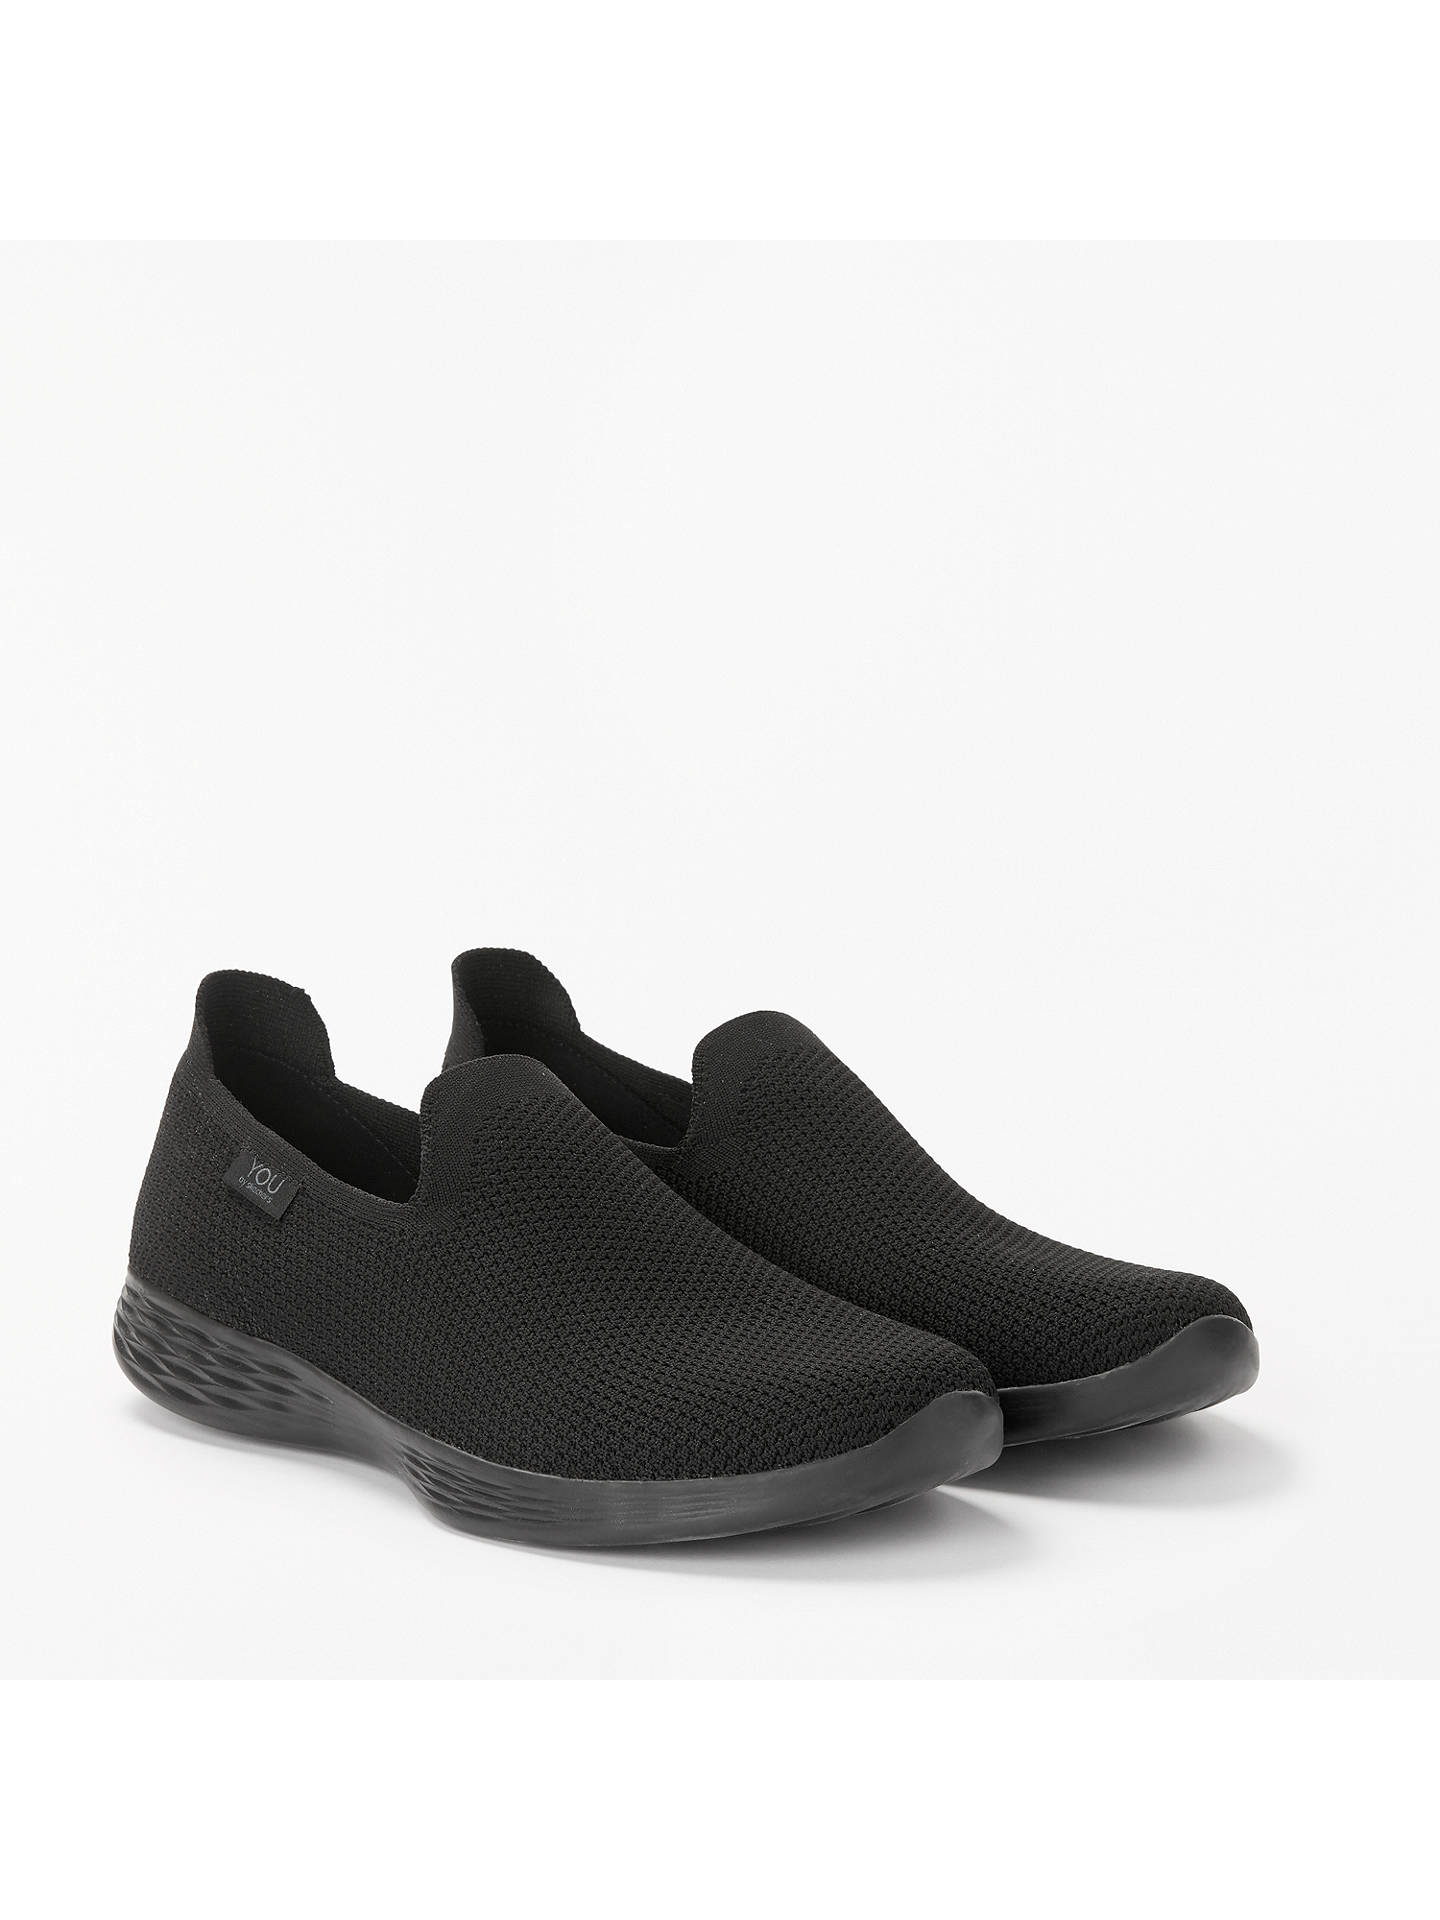 Buy Skechers You Define Slip On Trainers, Black, 6 Online at johnlewis.com